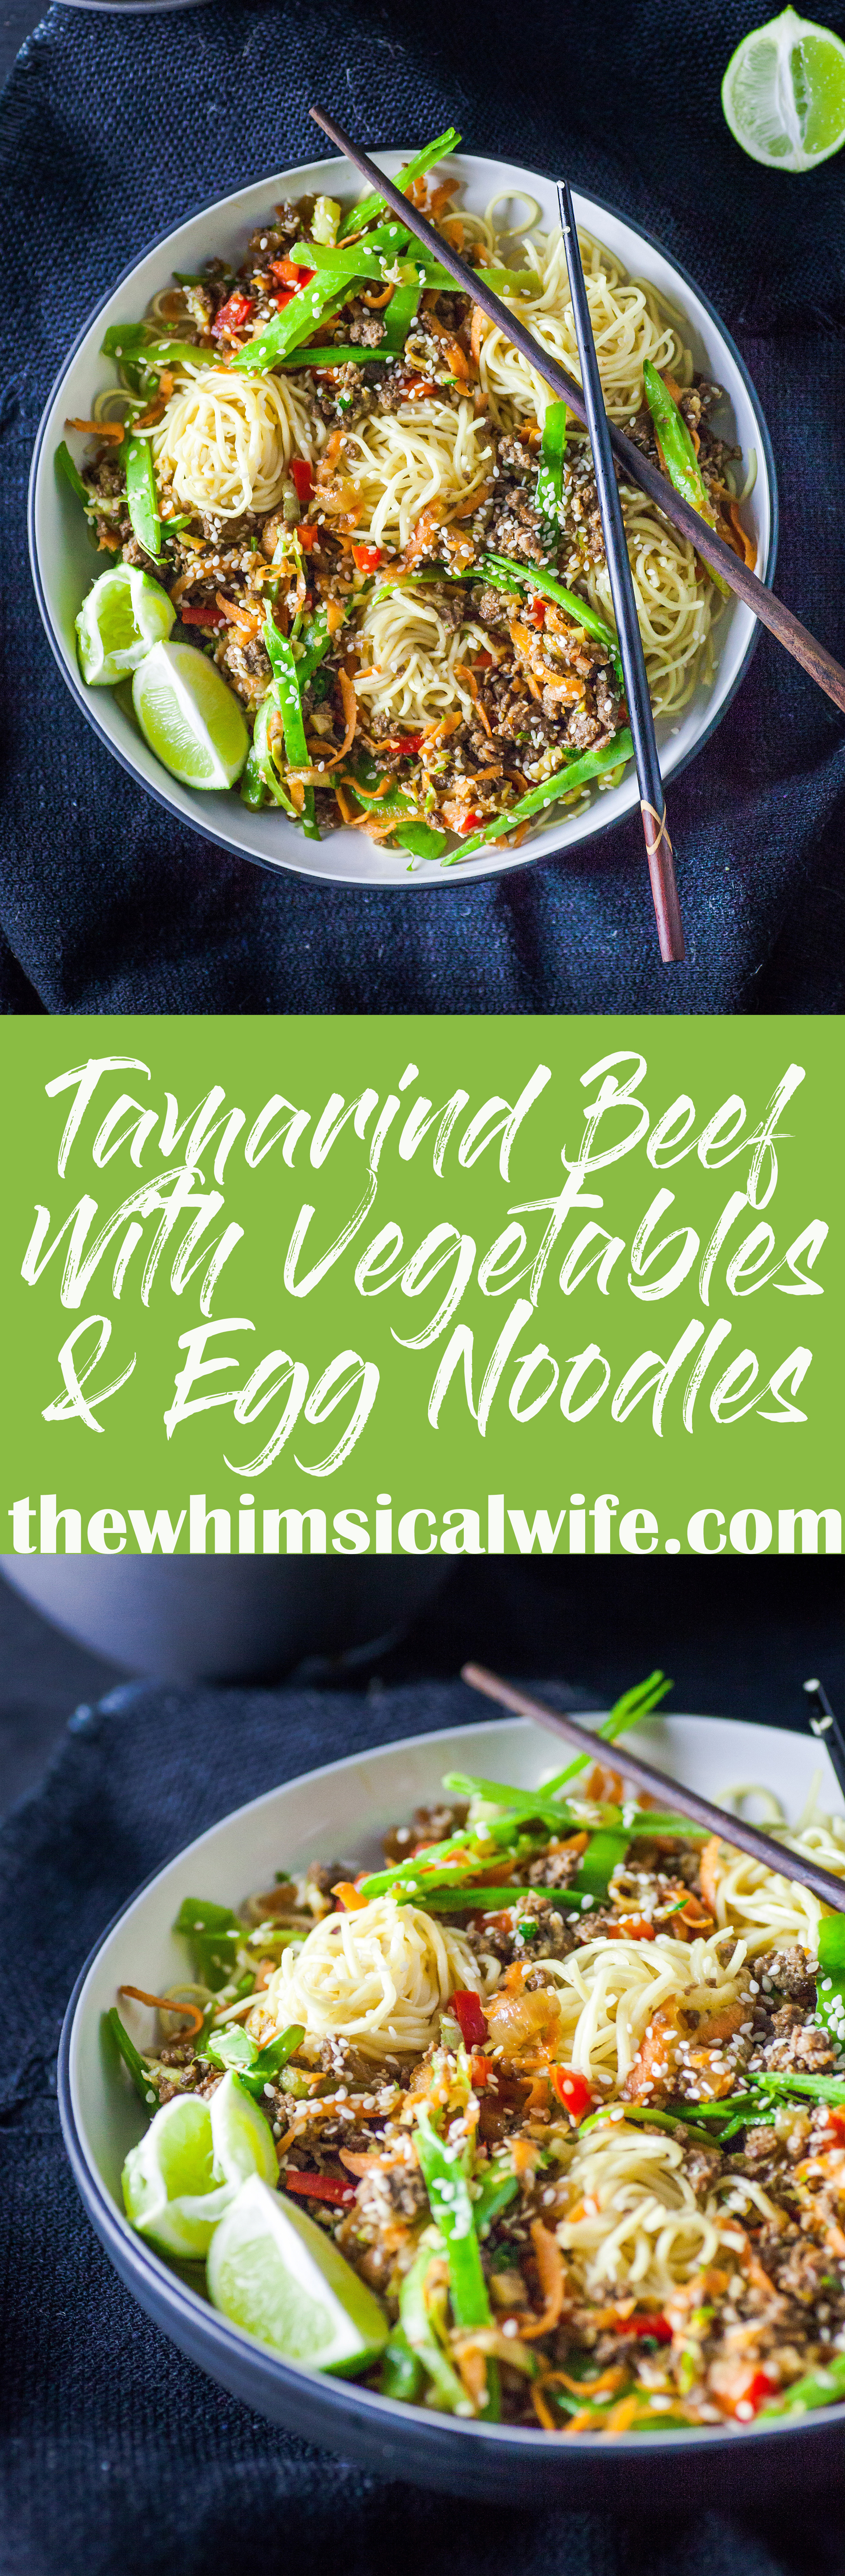 Tamarind Beef With Vegetables & Egg Noodles | The Whimsical Wife